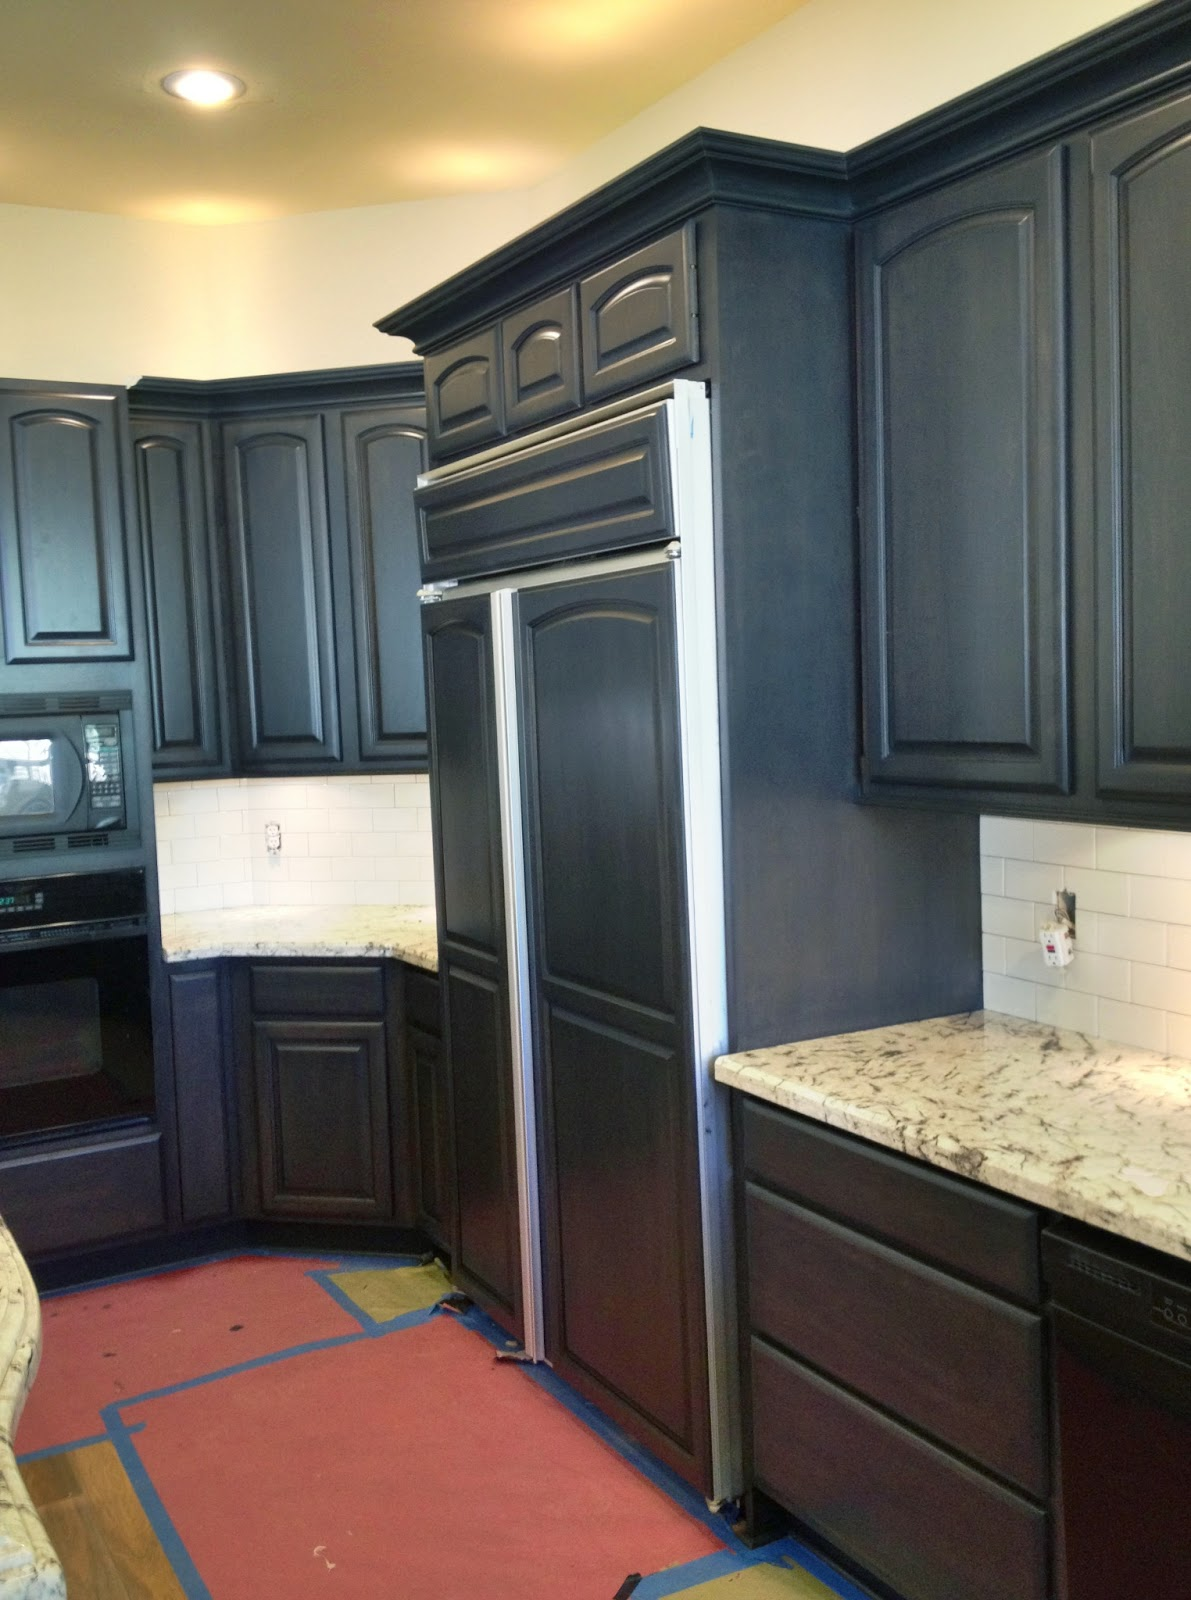 How To Refinish Kitchen Cabinets Without Stripping Ideas Audreycouture - How to refinish kitchen cabinets without stripping